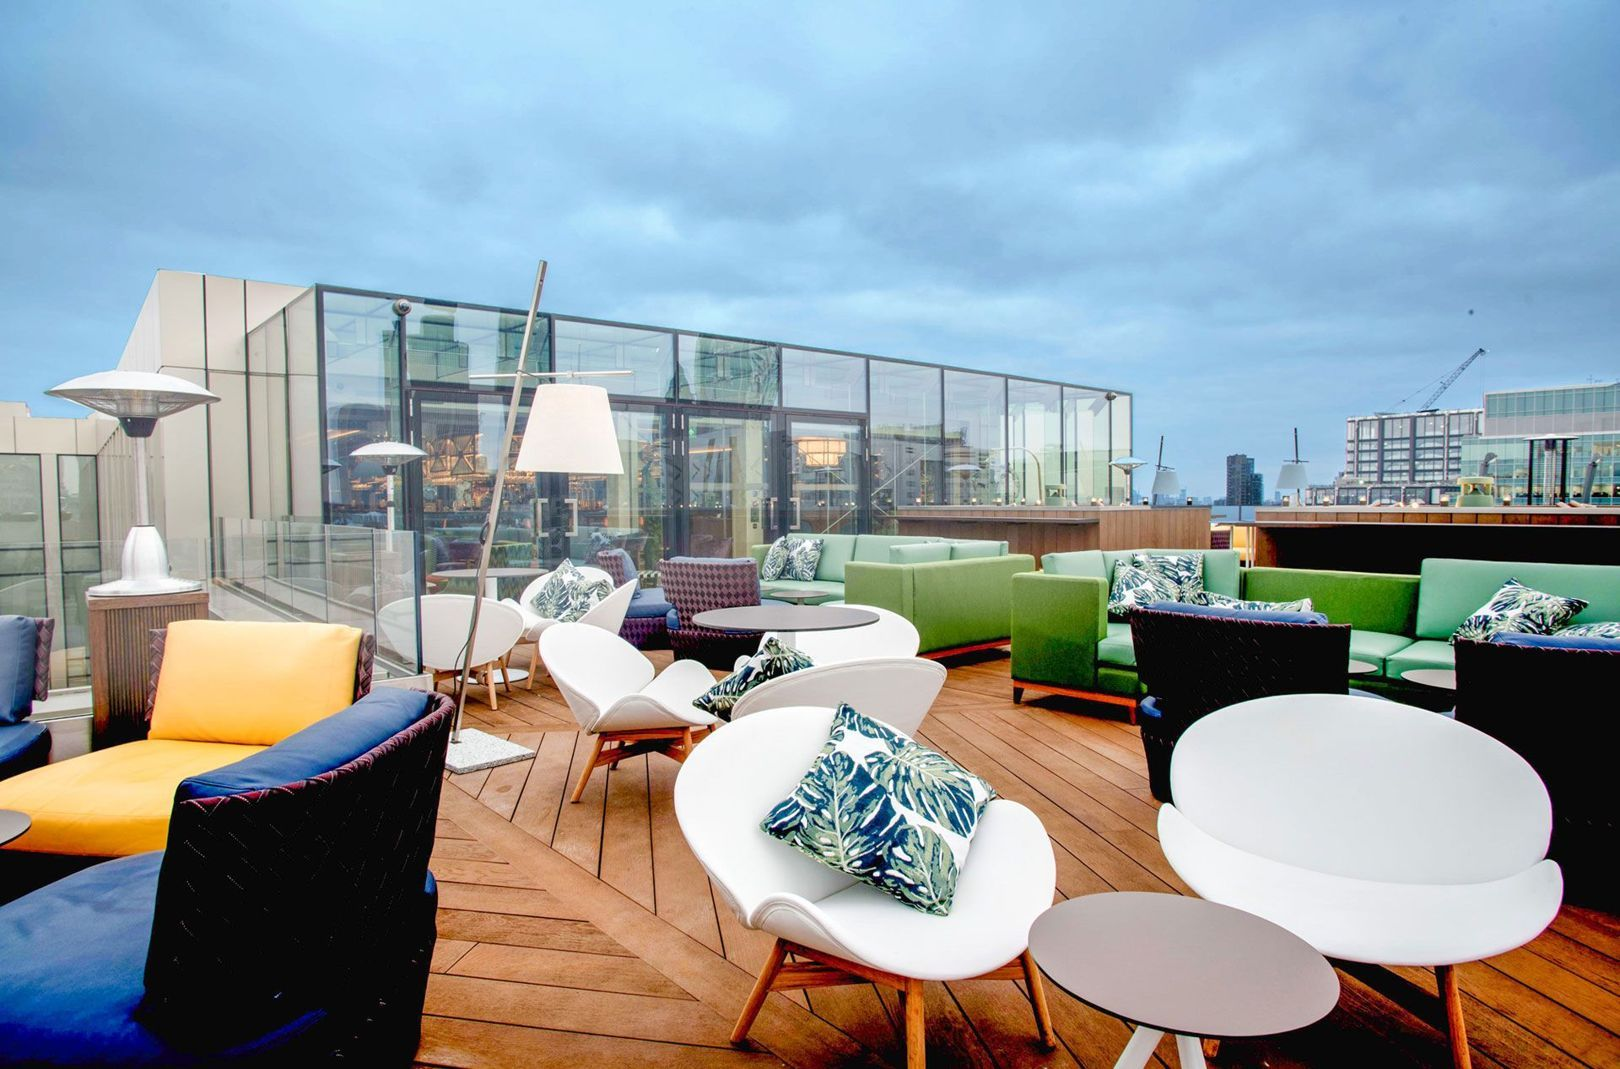 The Best Rooftop Bars In London Rooftop Restaurant London Rooftop Bar Design Rooftop Restaurant